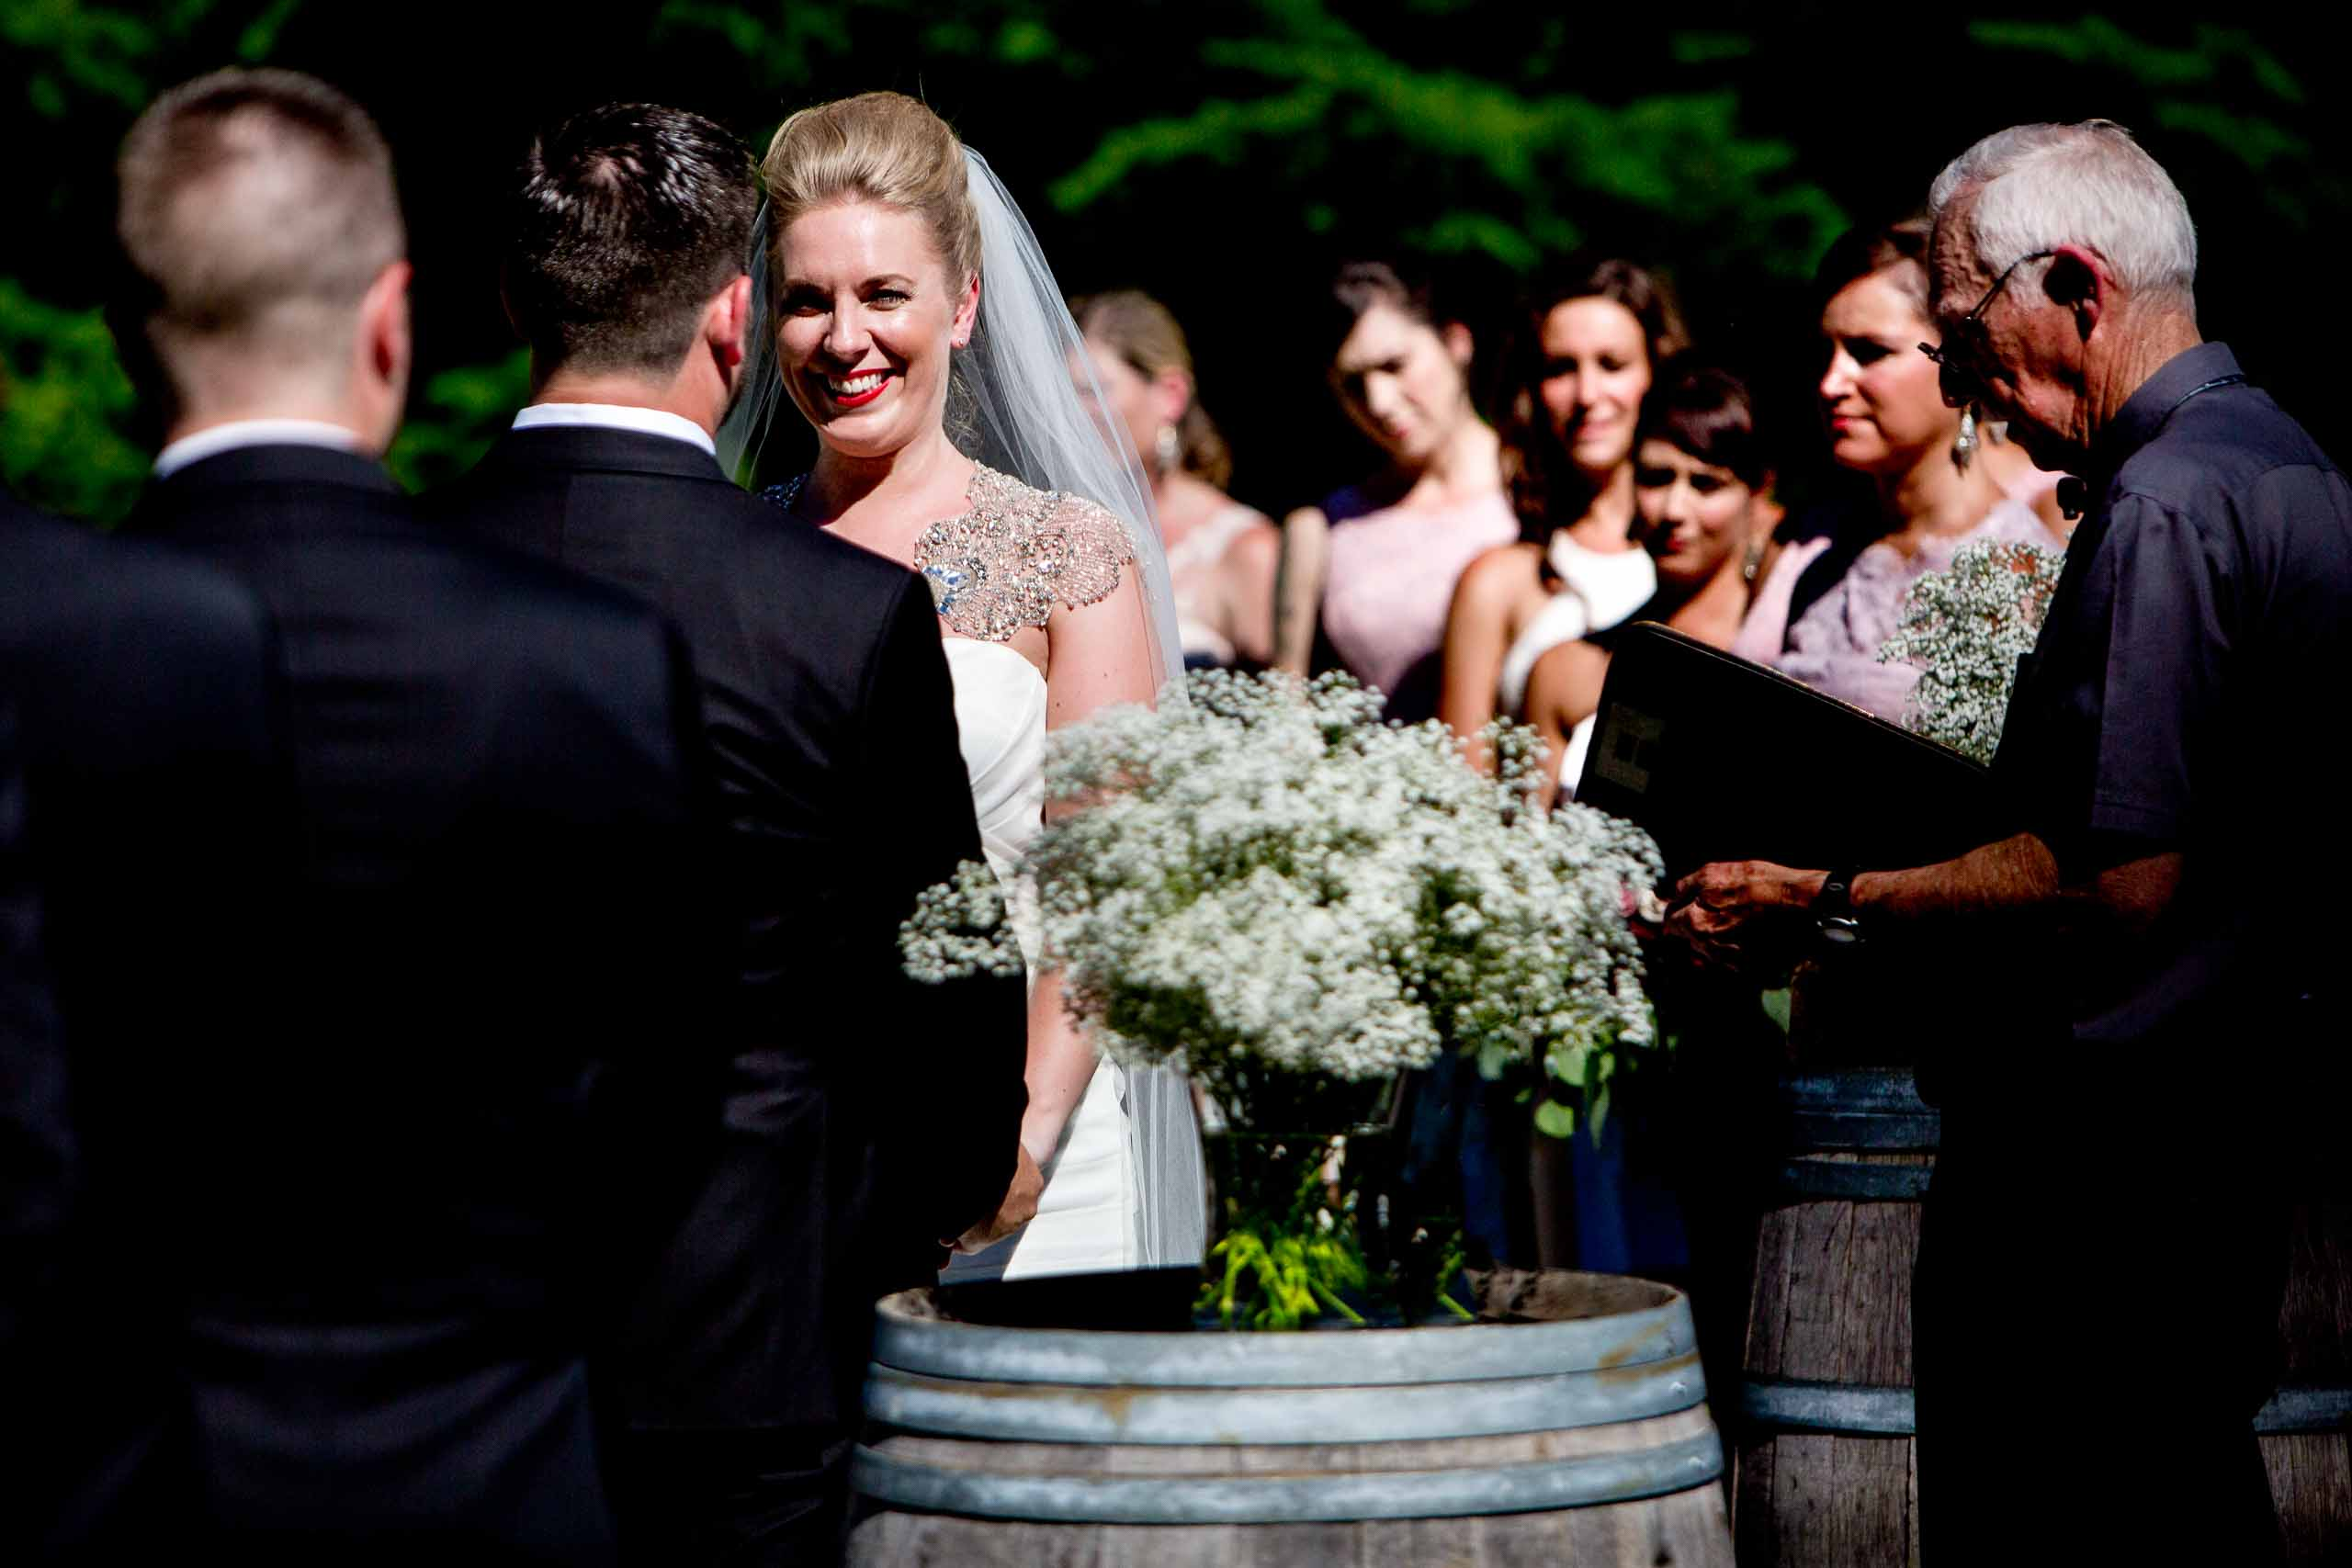 Emotional bride exchanging vows at a Gorge Crest wedding in the Columbia Gorge near Hood River just outside Portland Oregon